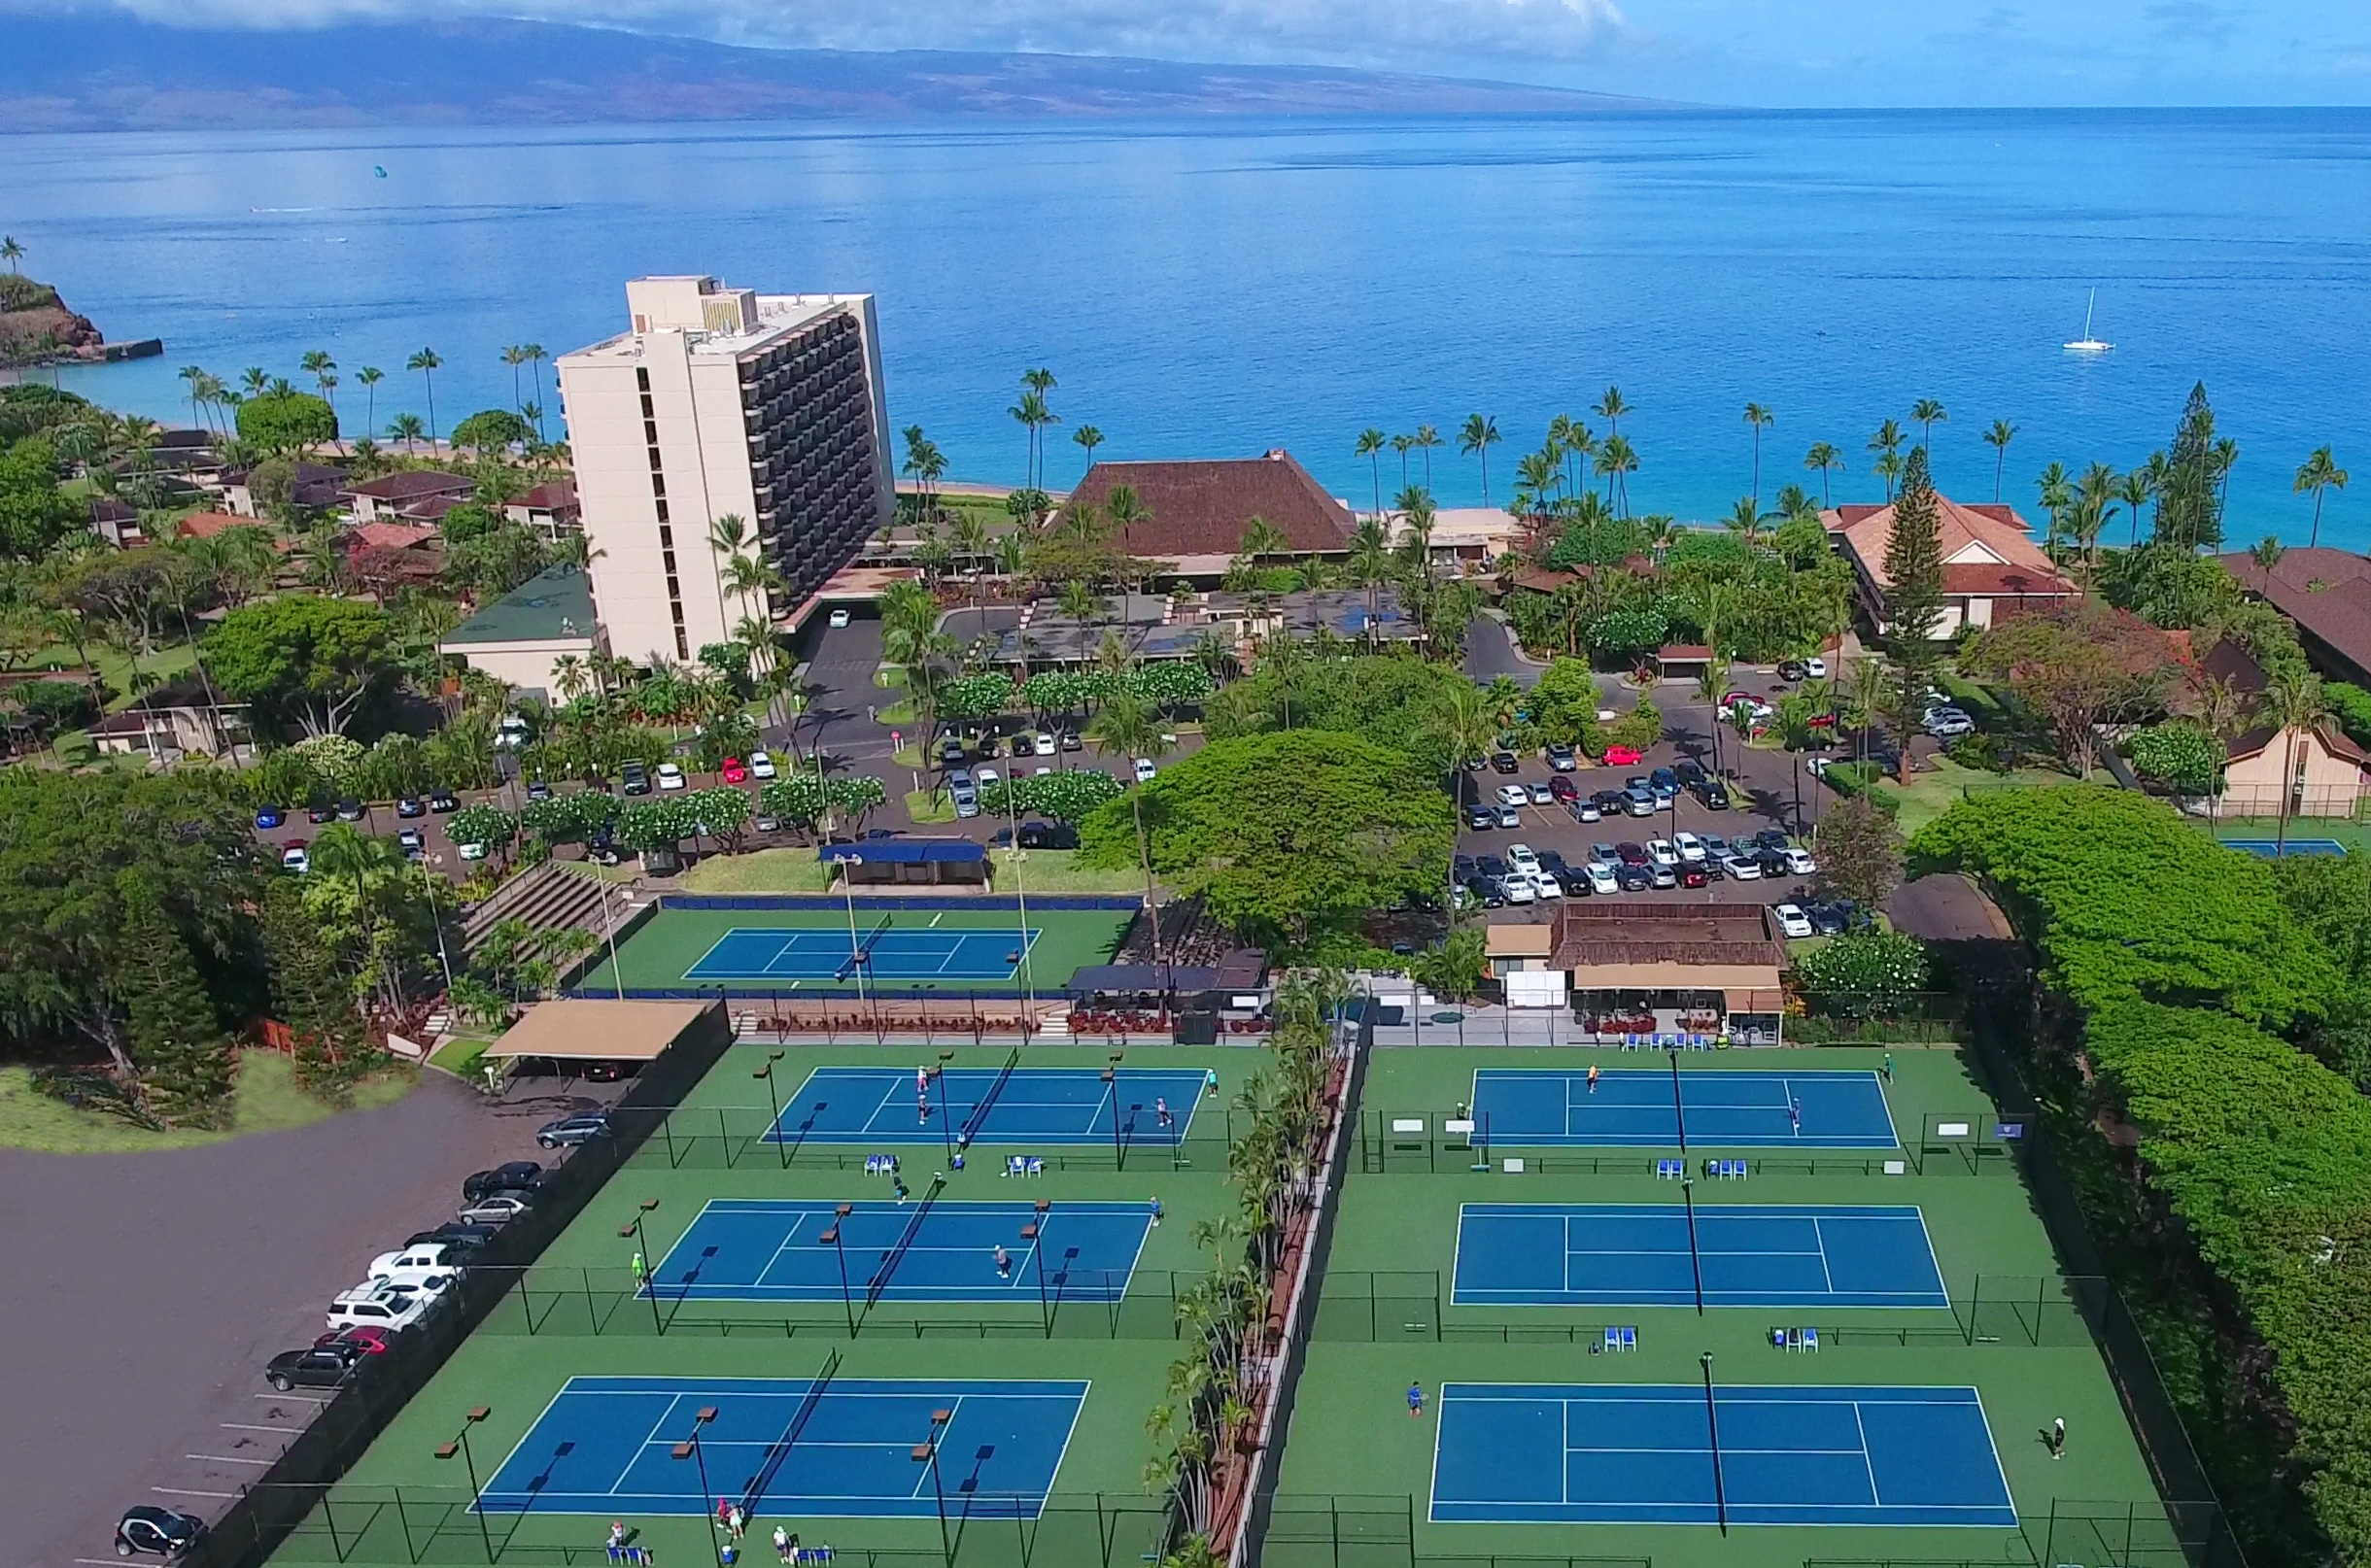 Royal Lahaina Tennis Ranch to Host World-Class Tennis Camp